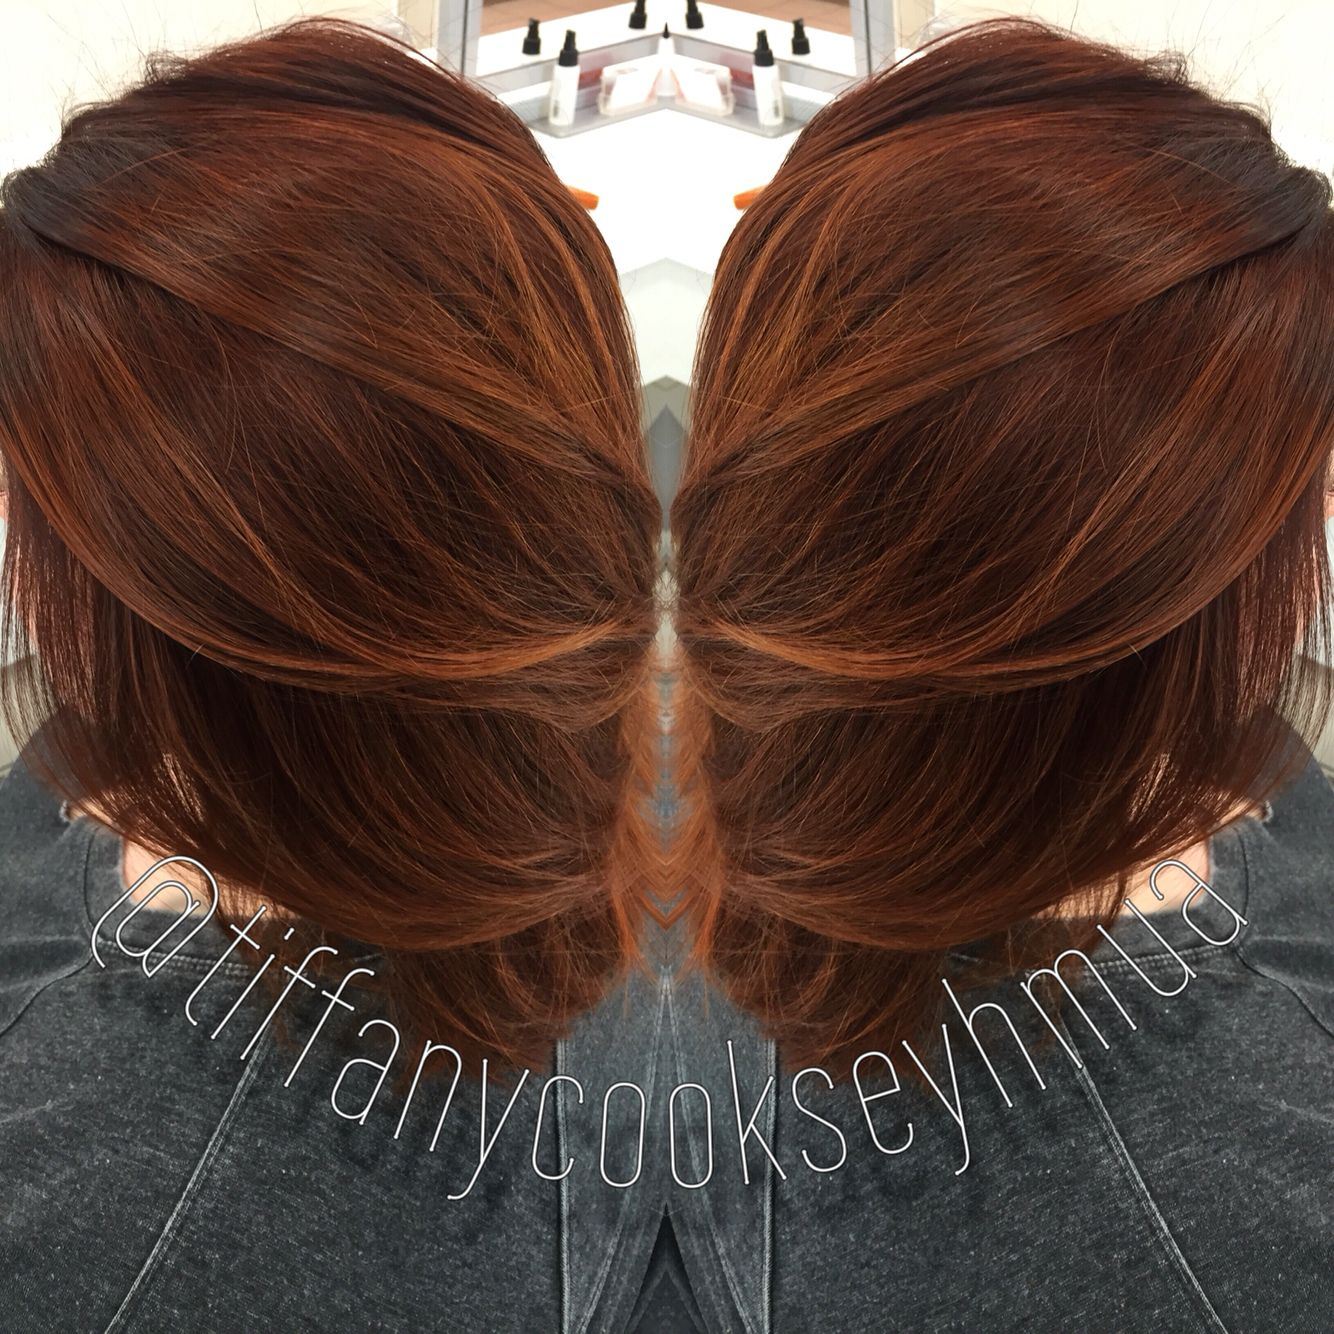 2019 year looks- Hair red Fall colors